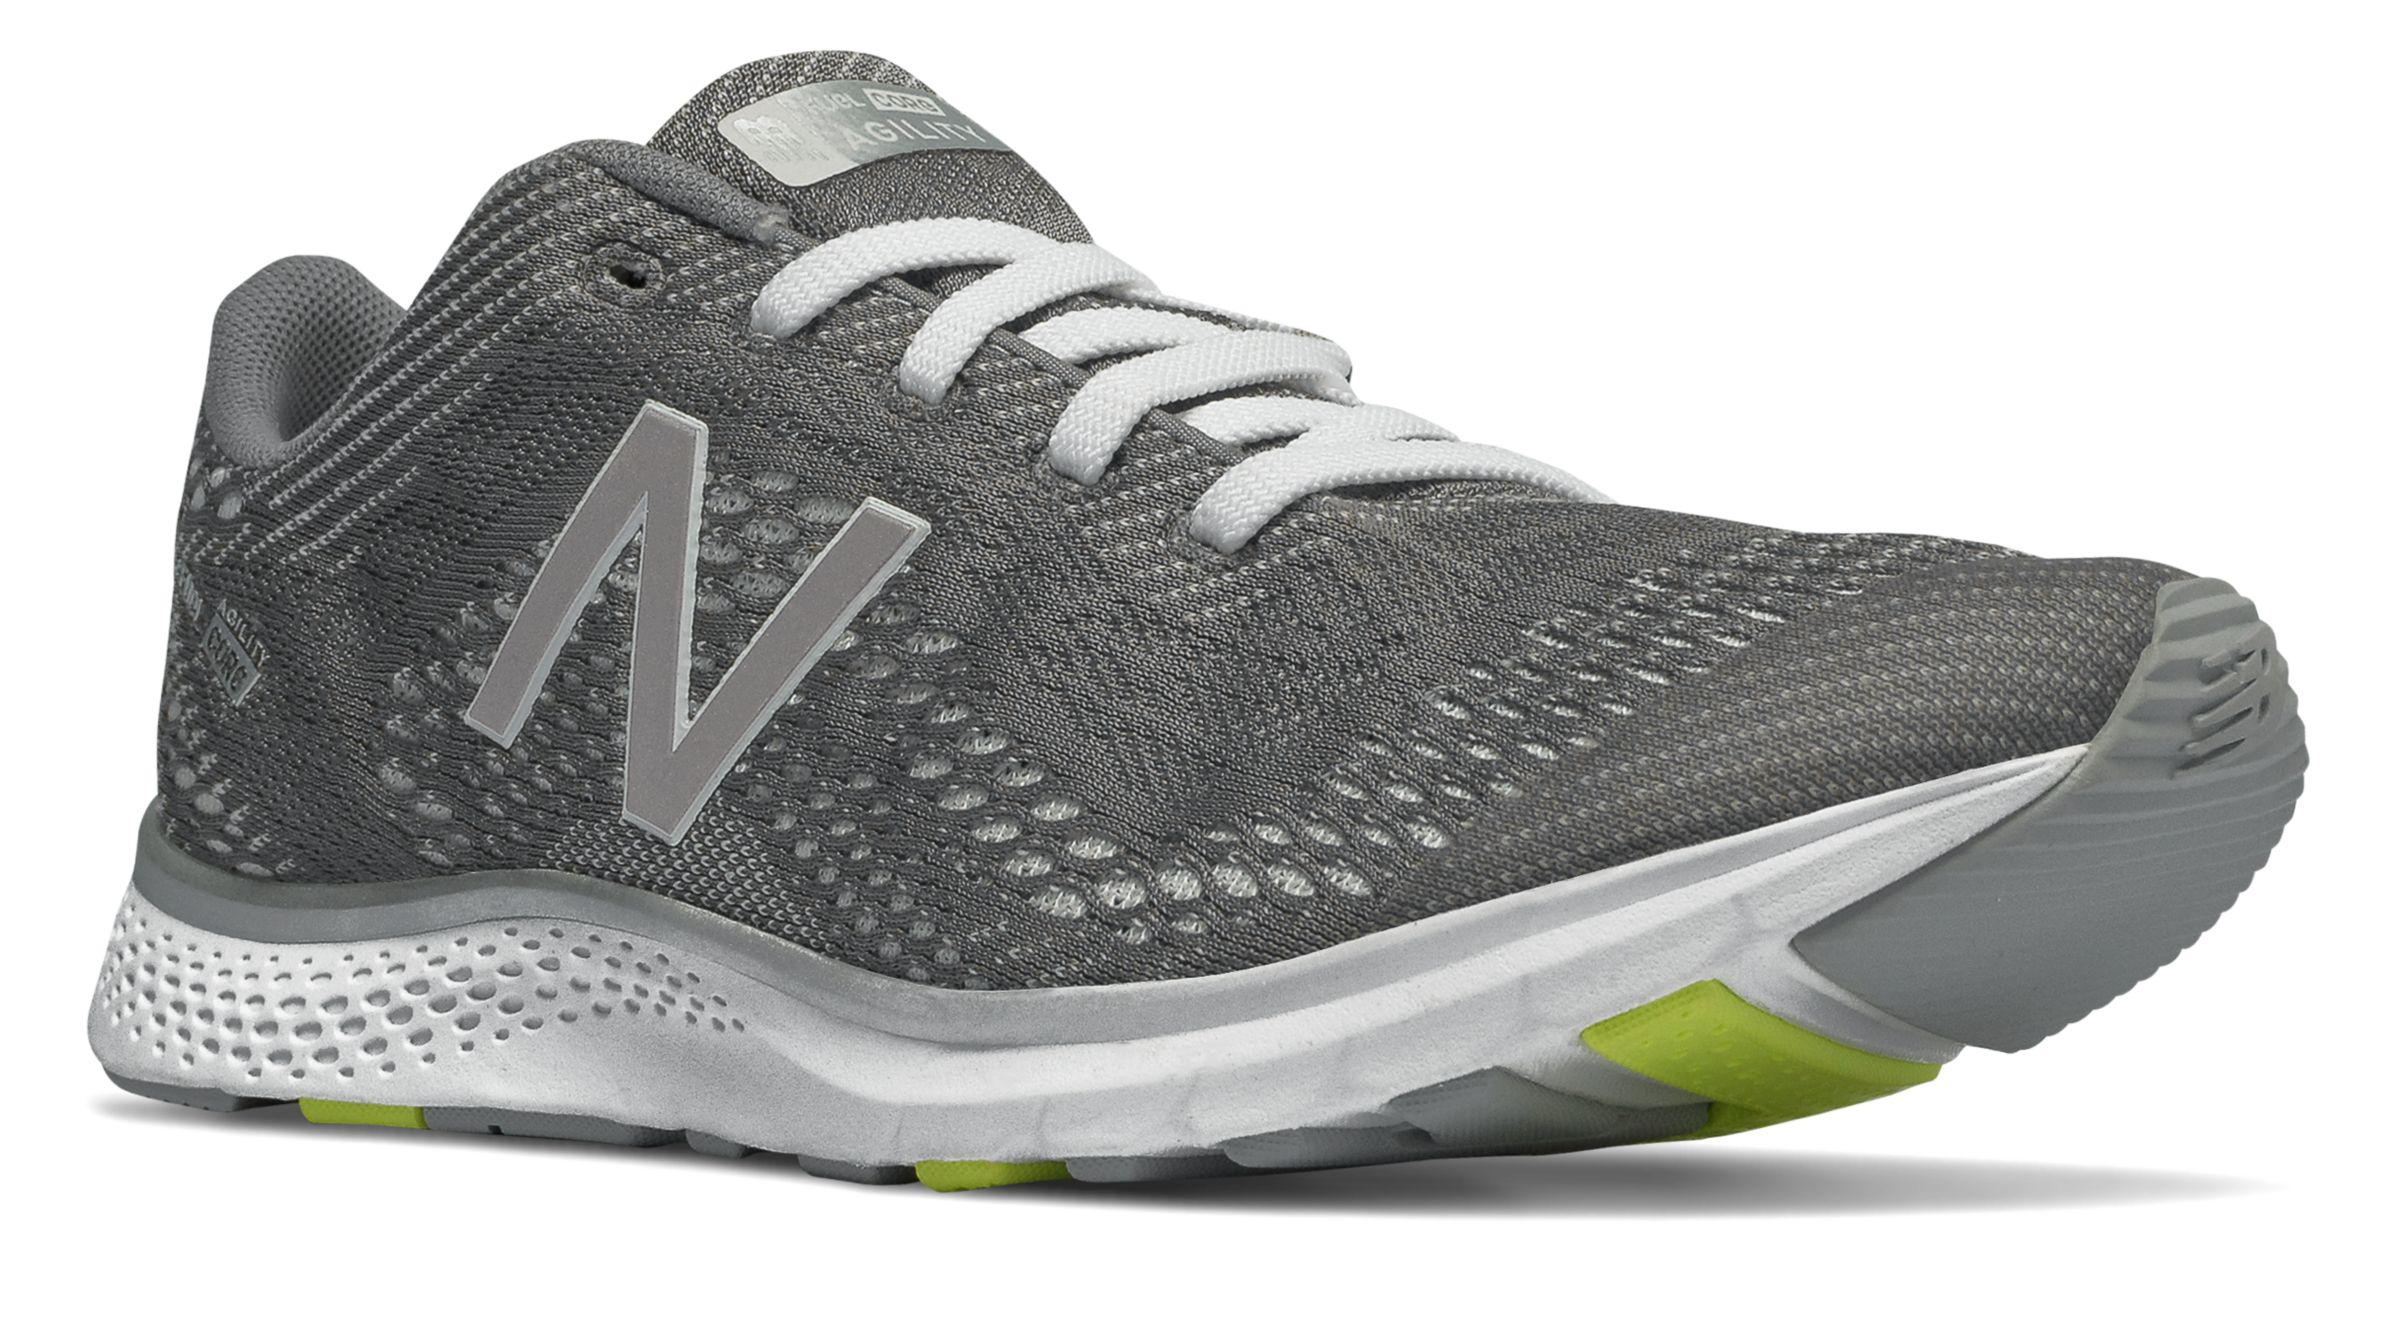 New Balance Rubber Fuelcore Agility V2